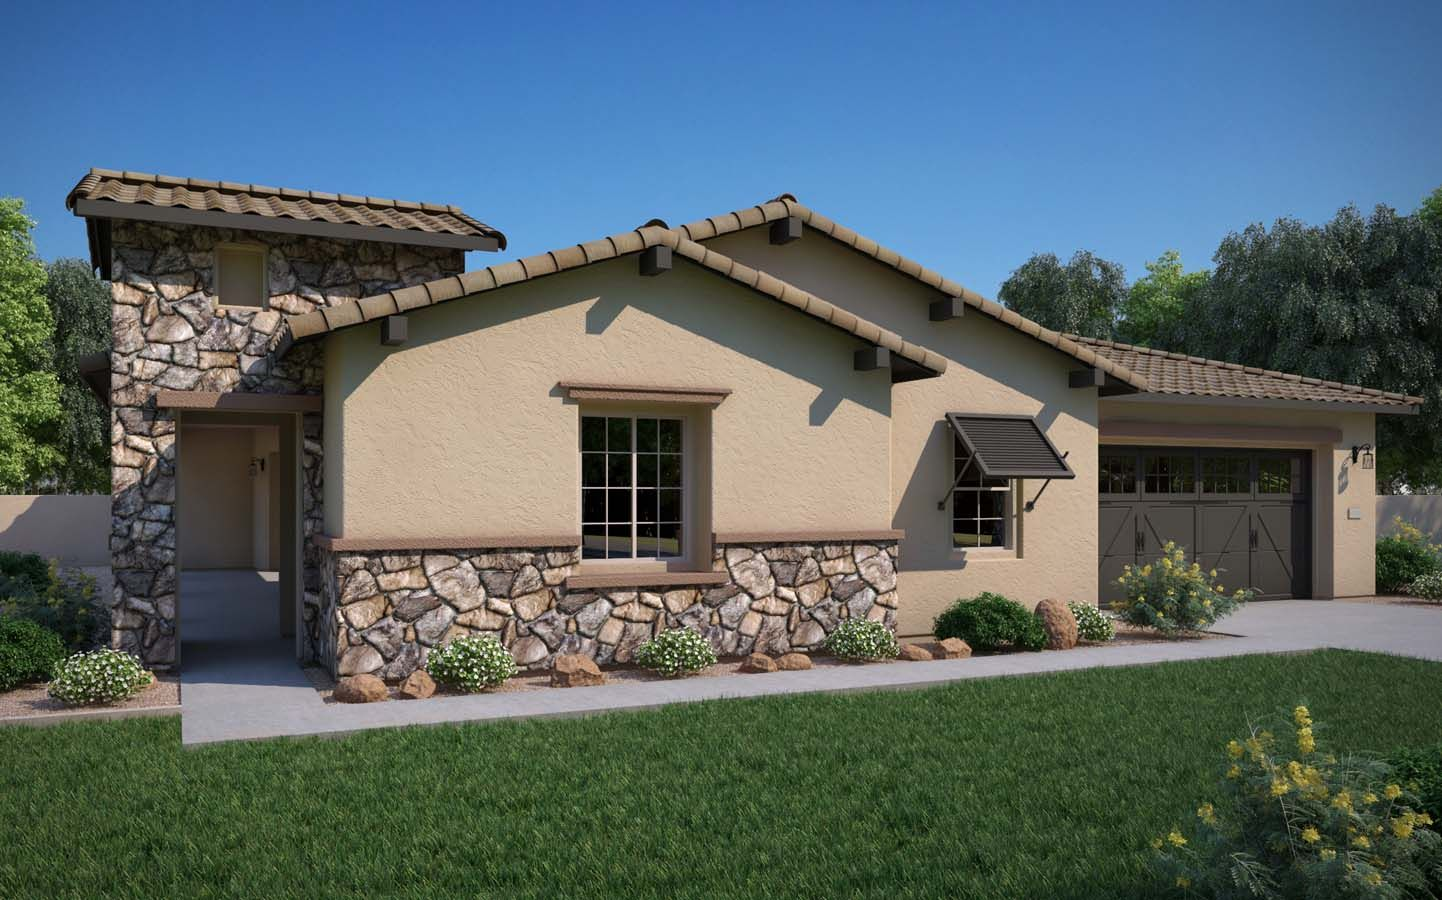 Single Family for Active at Residence 3 23144 N. 76th Ln. Peoria, Arizona 85383 United States